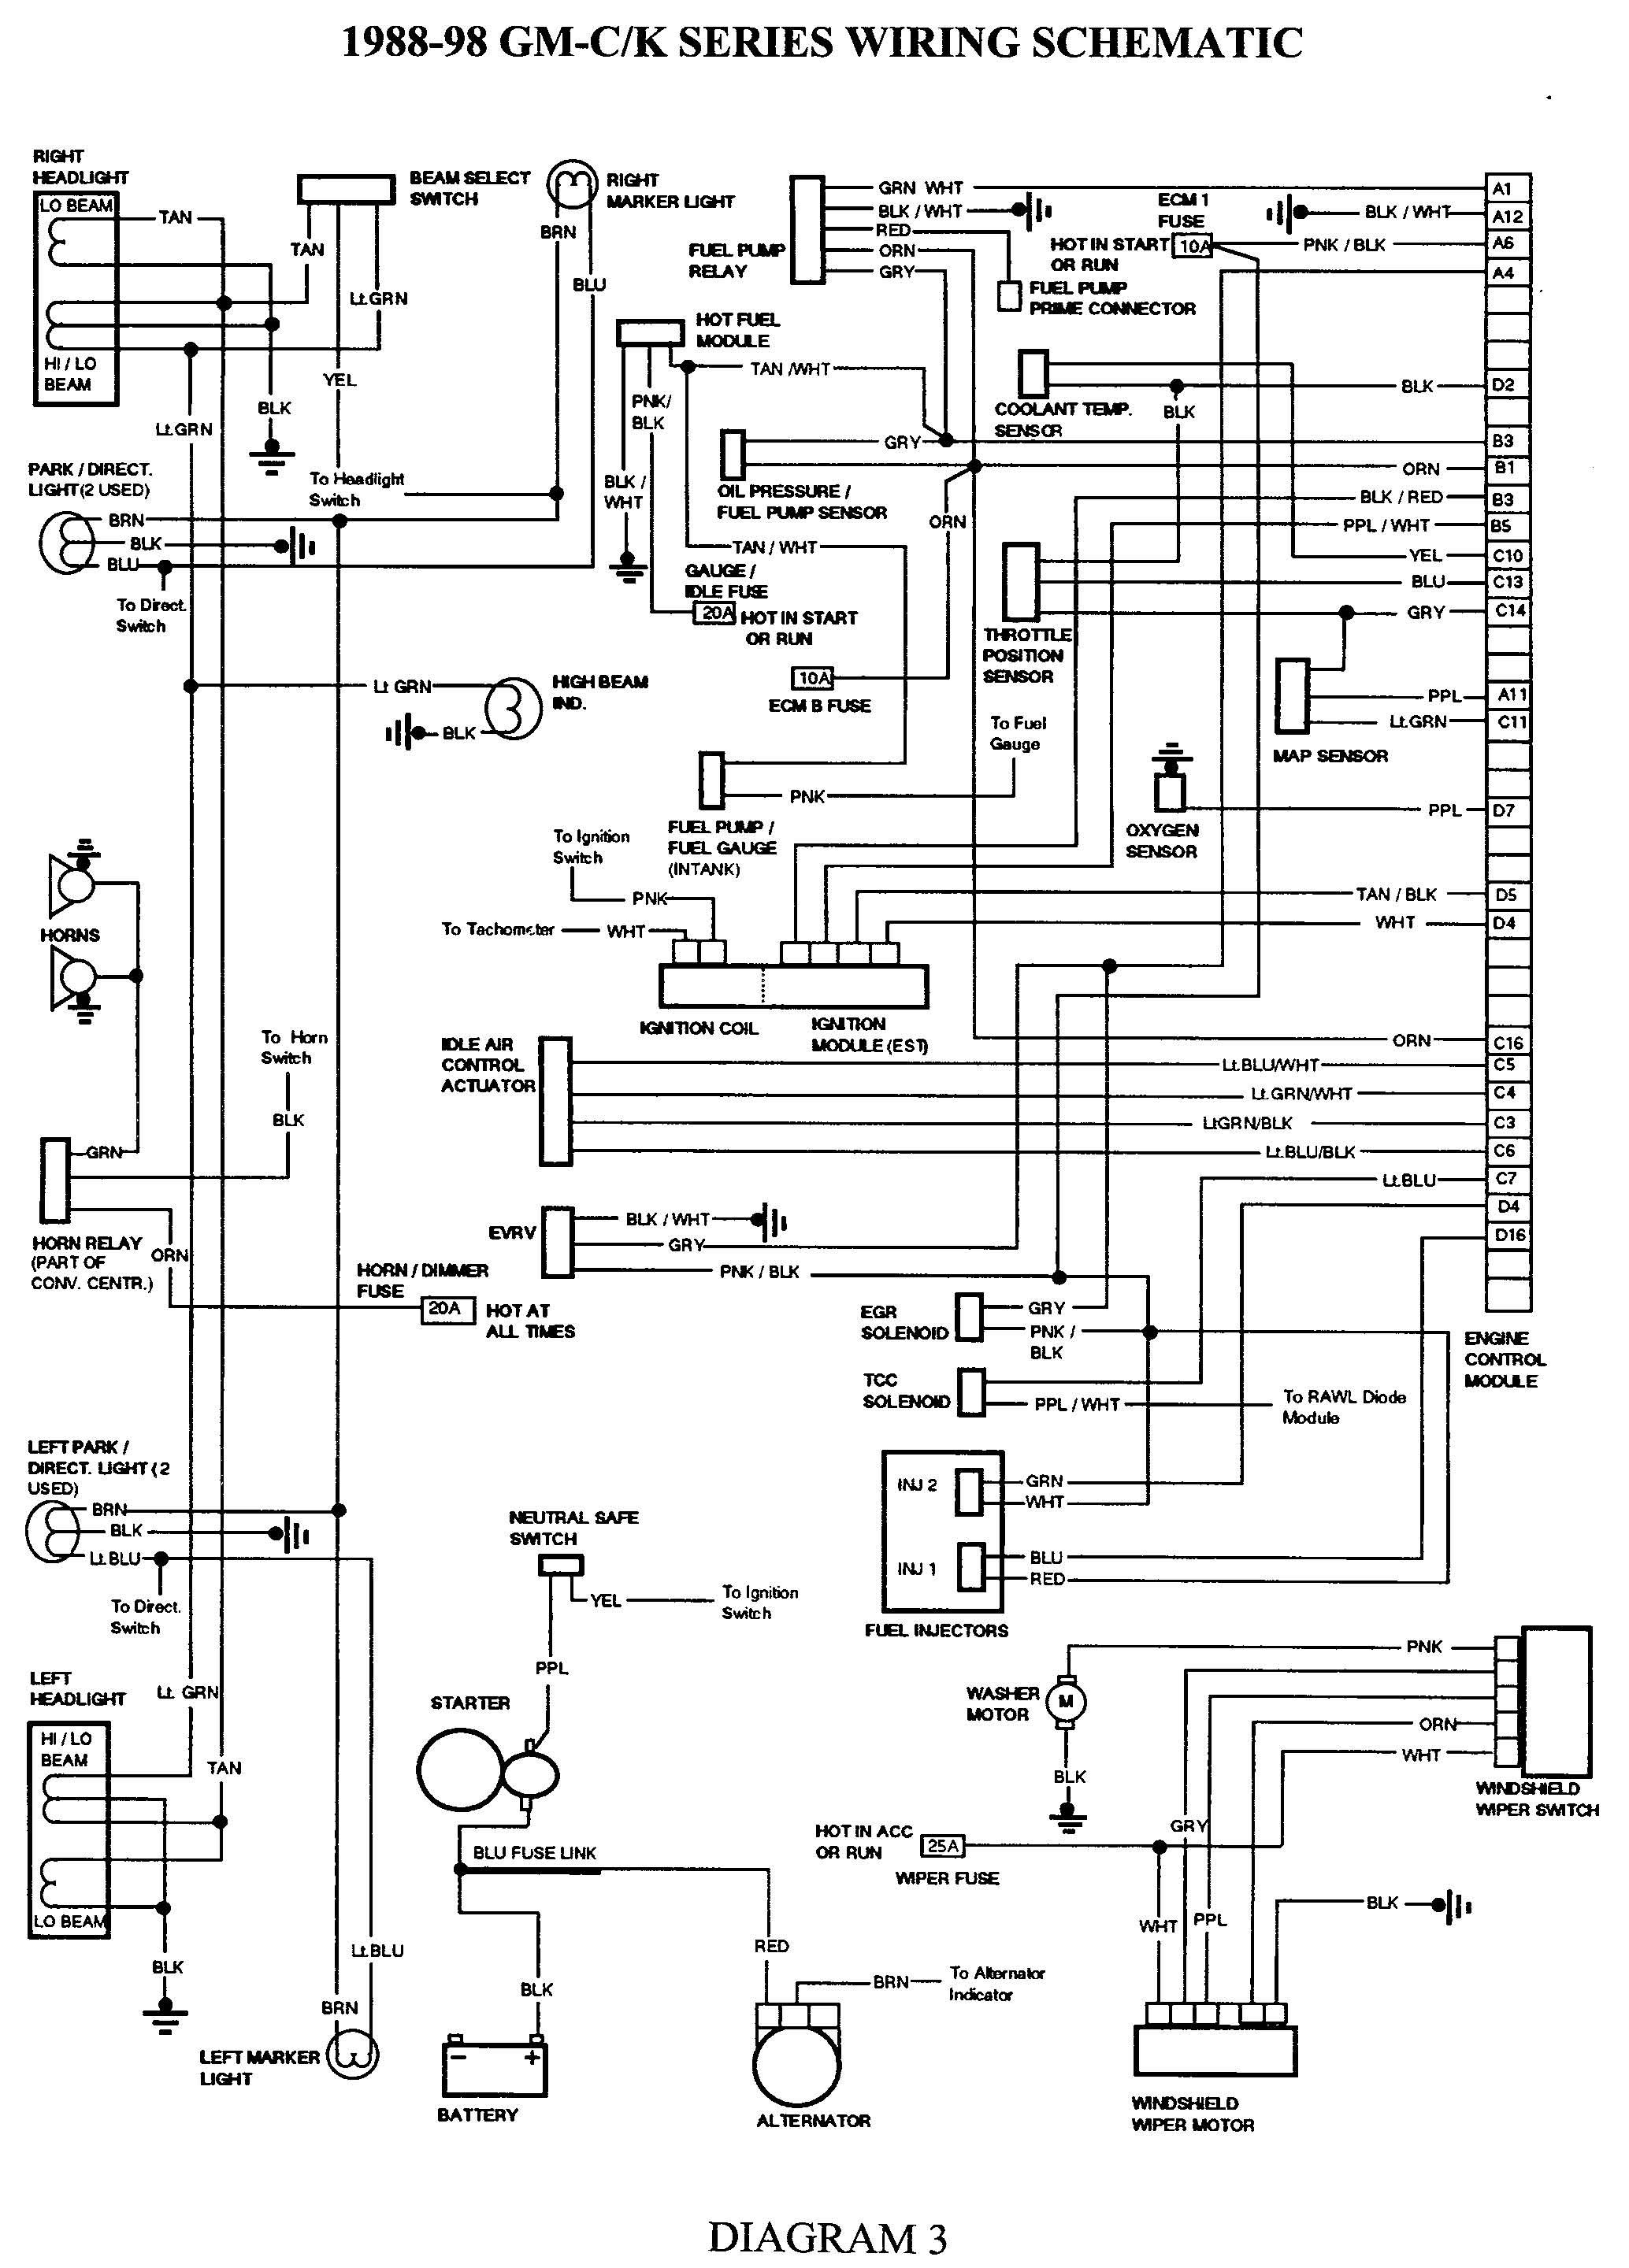 gmc truck wiring harness wiring diagram third levelgmc truck wiring diagrams on gm wiring harness diagram 88 98 kc 1990 gmc truck wiring